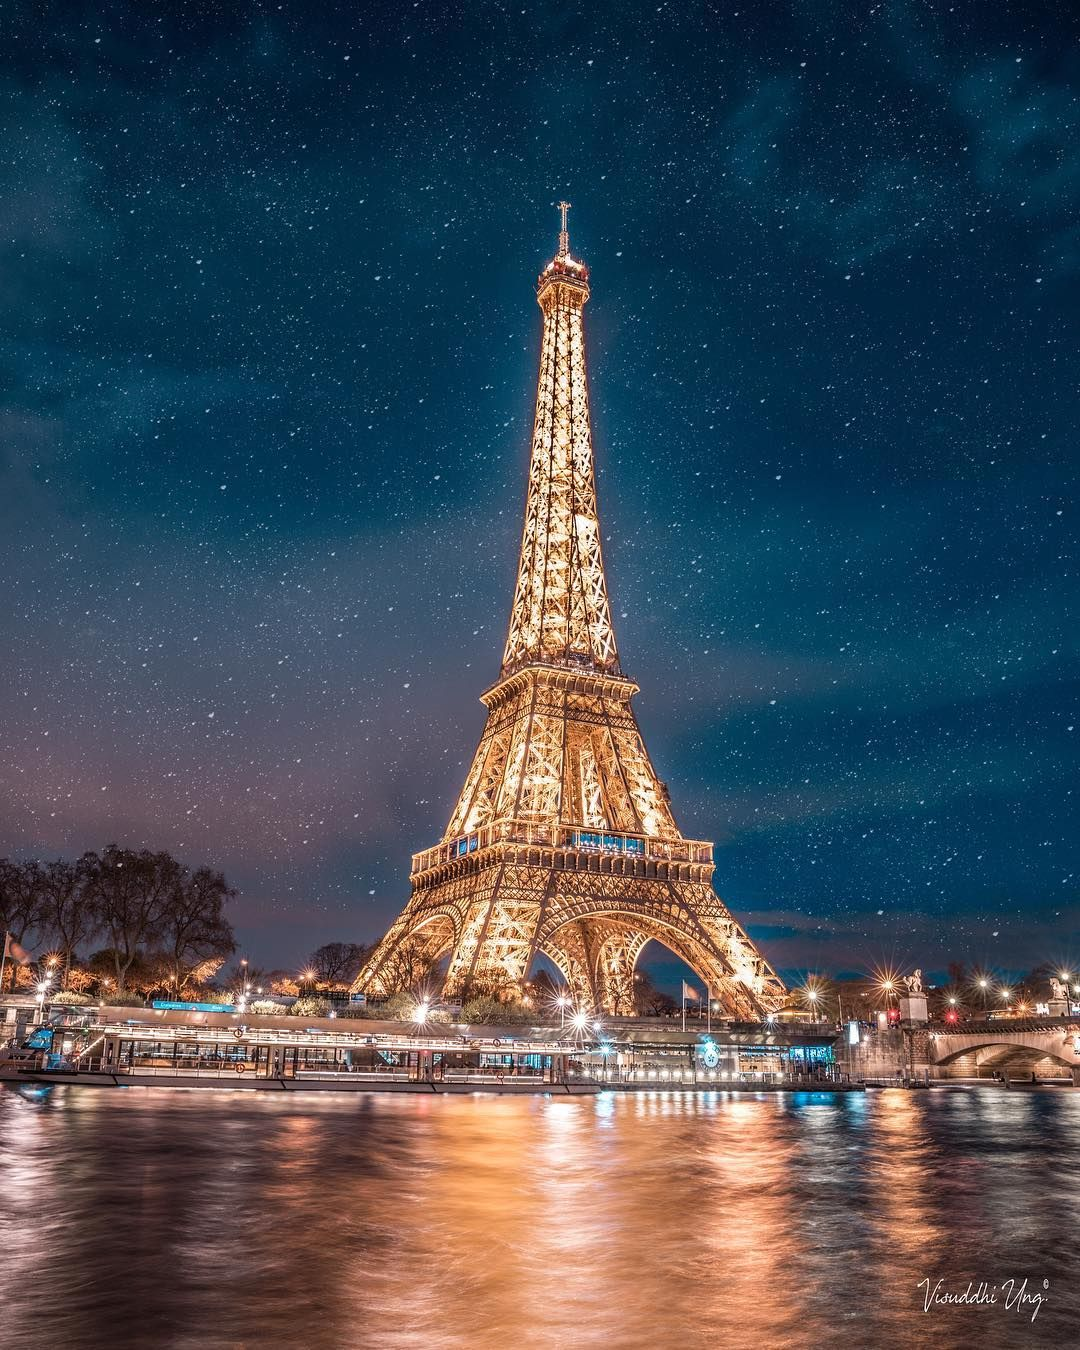 Parisian Dreams W Parisbyflorian Eiffeltower Paris Love Citykillerz Psg City Mybeautifulparis Eiffel Tower Tour Eiffel Paris Pictures